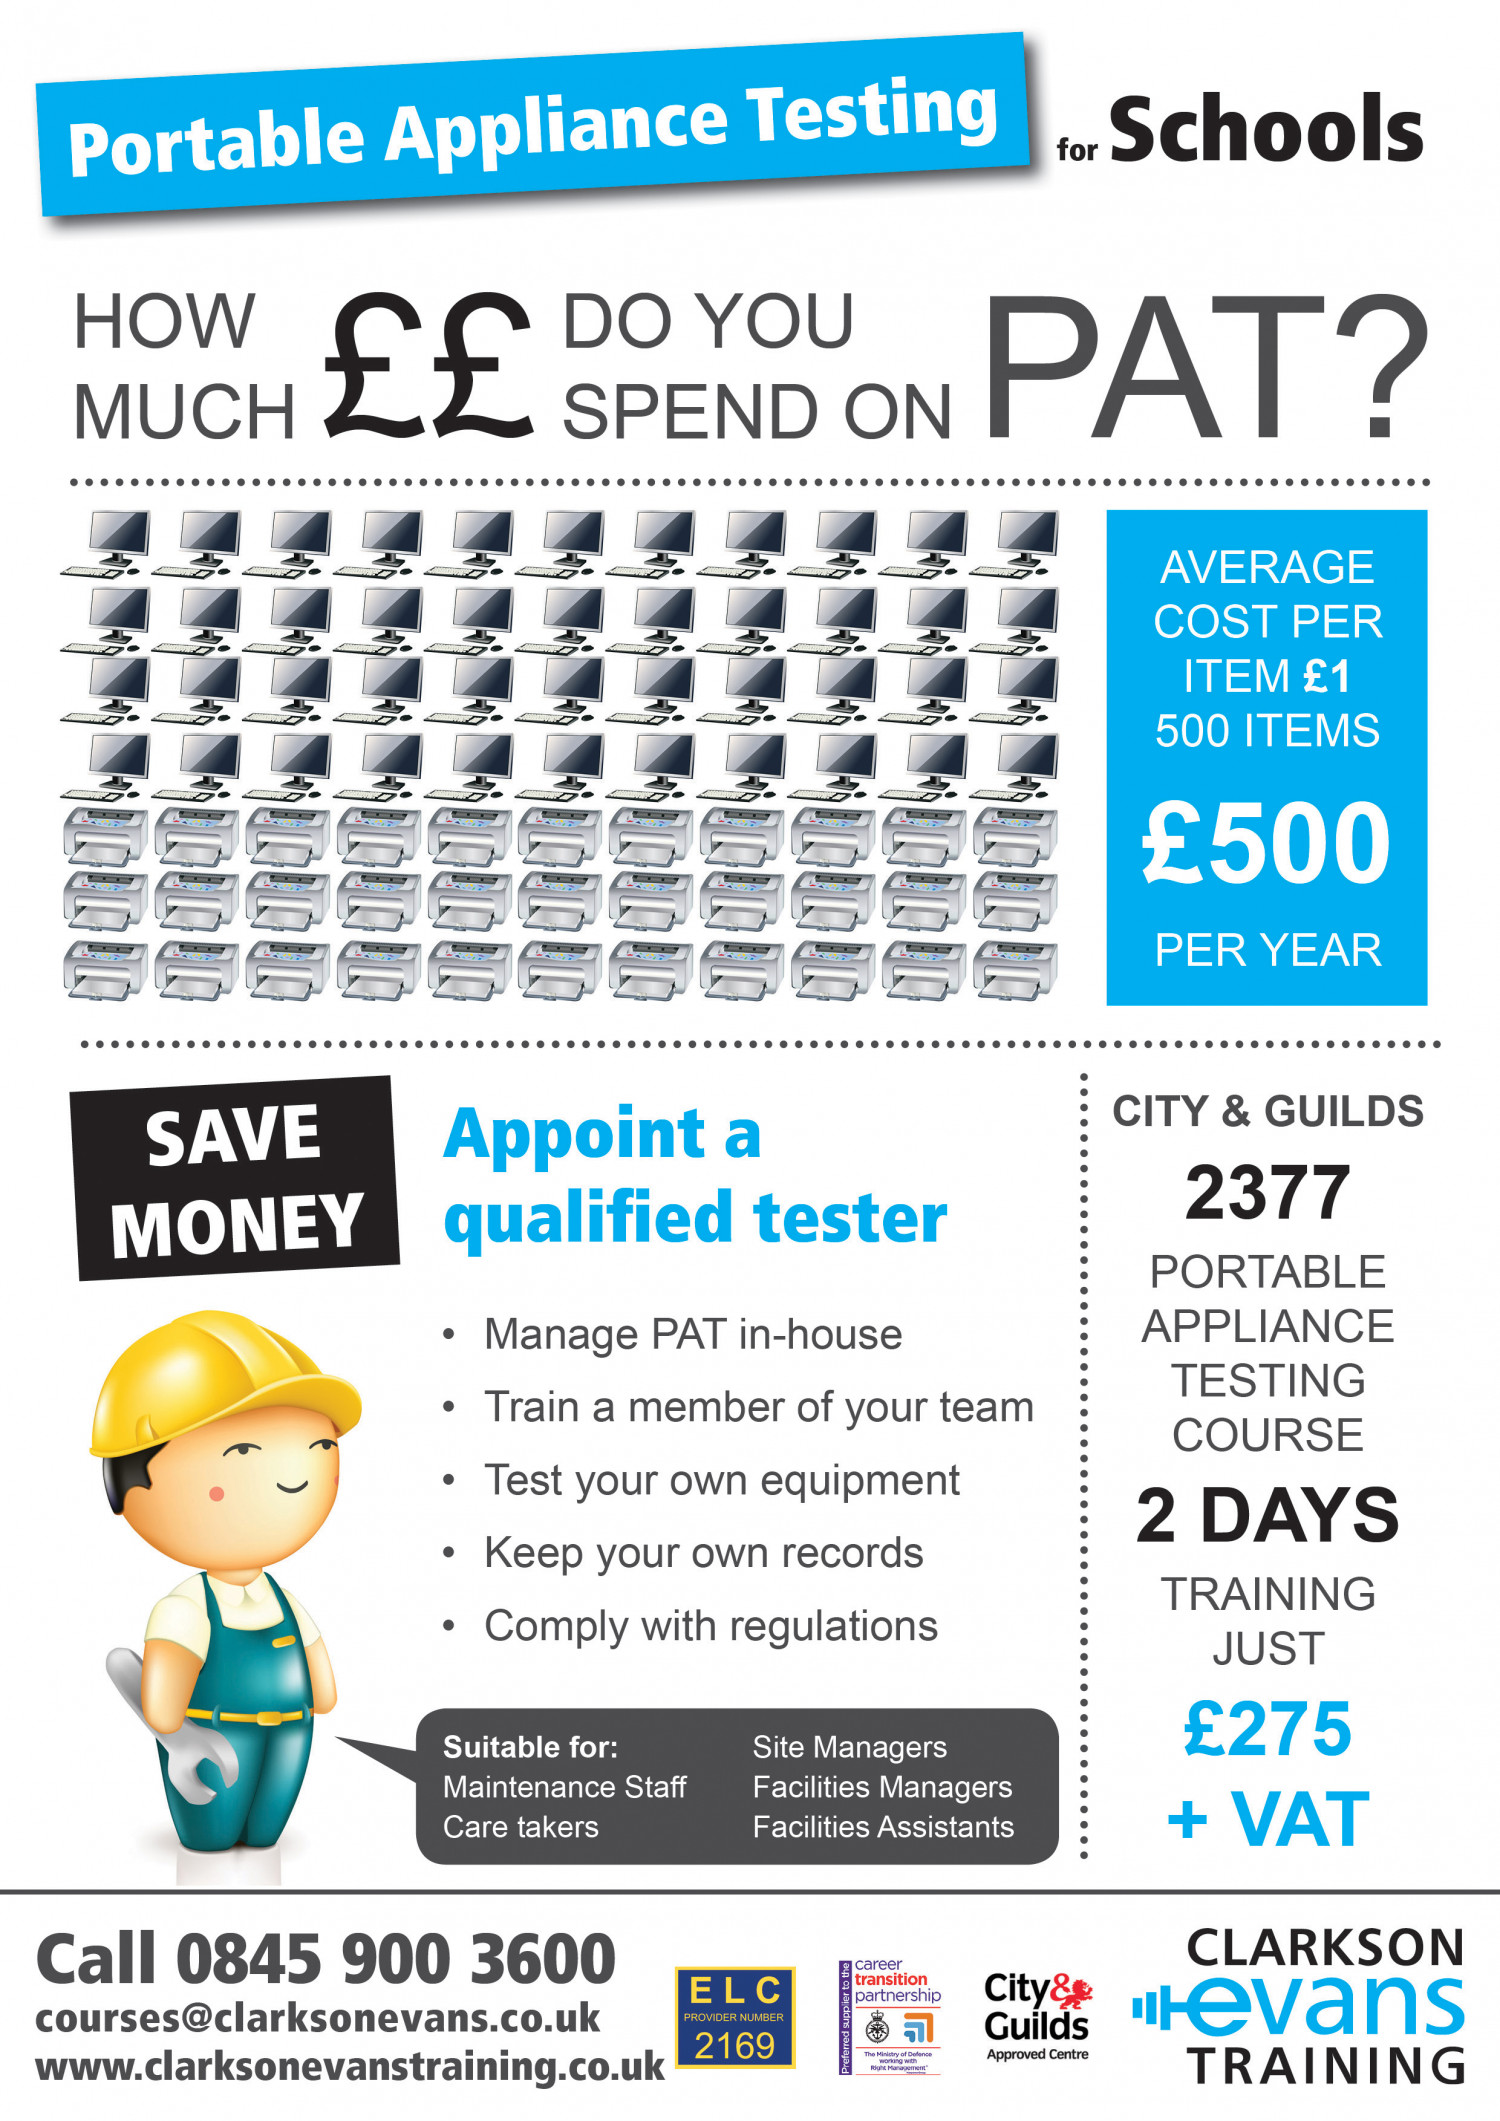 How much do you spend on Portable Appliance Testing? Infographic